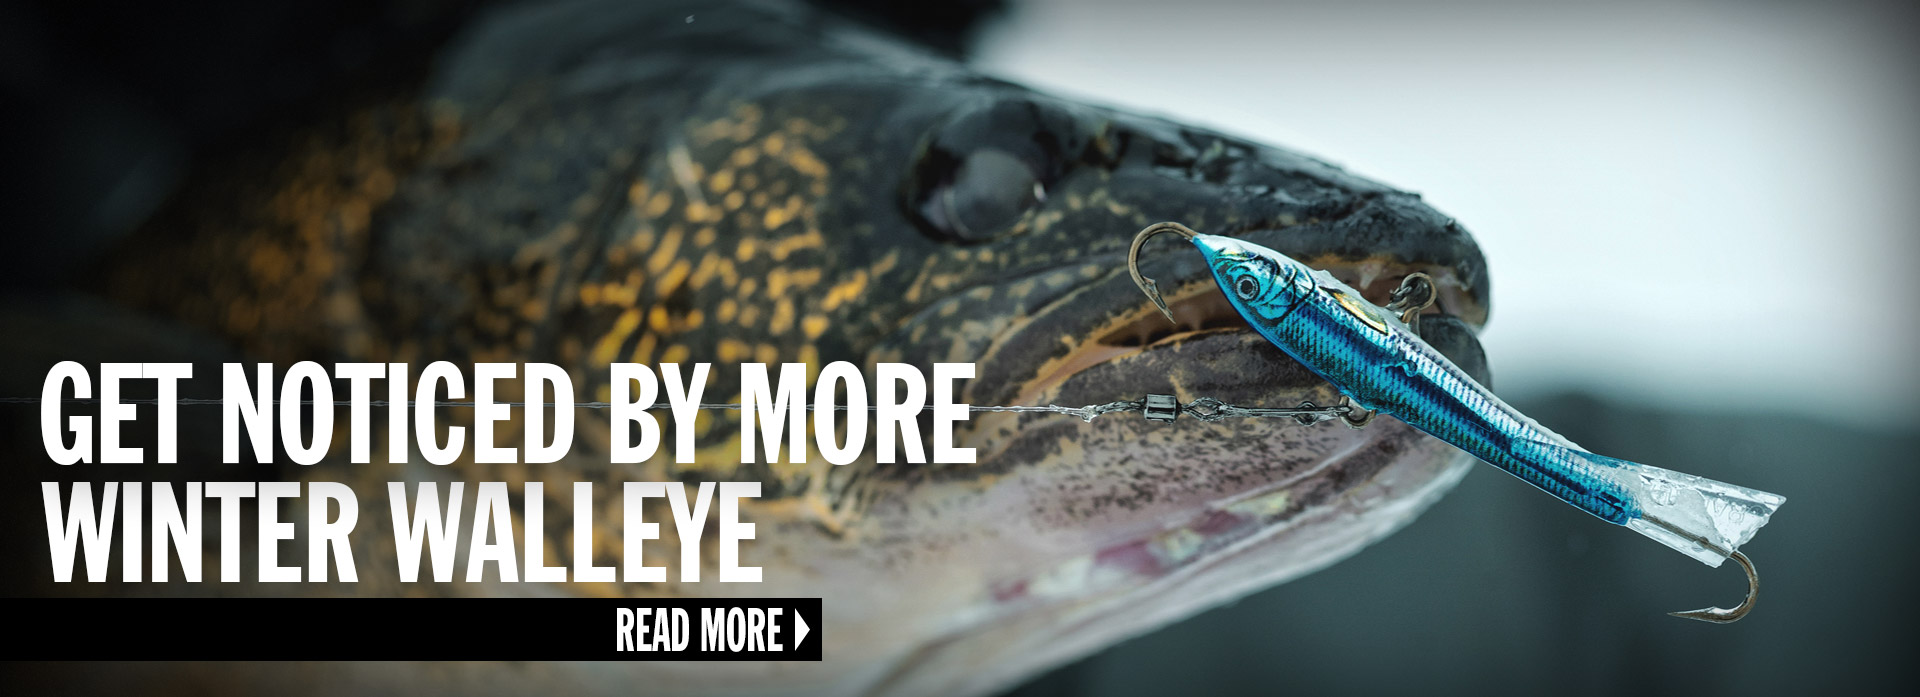 Get Noticed By More Winter Walleye